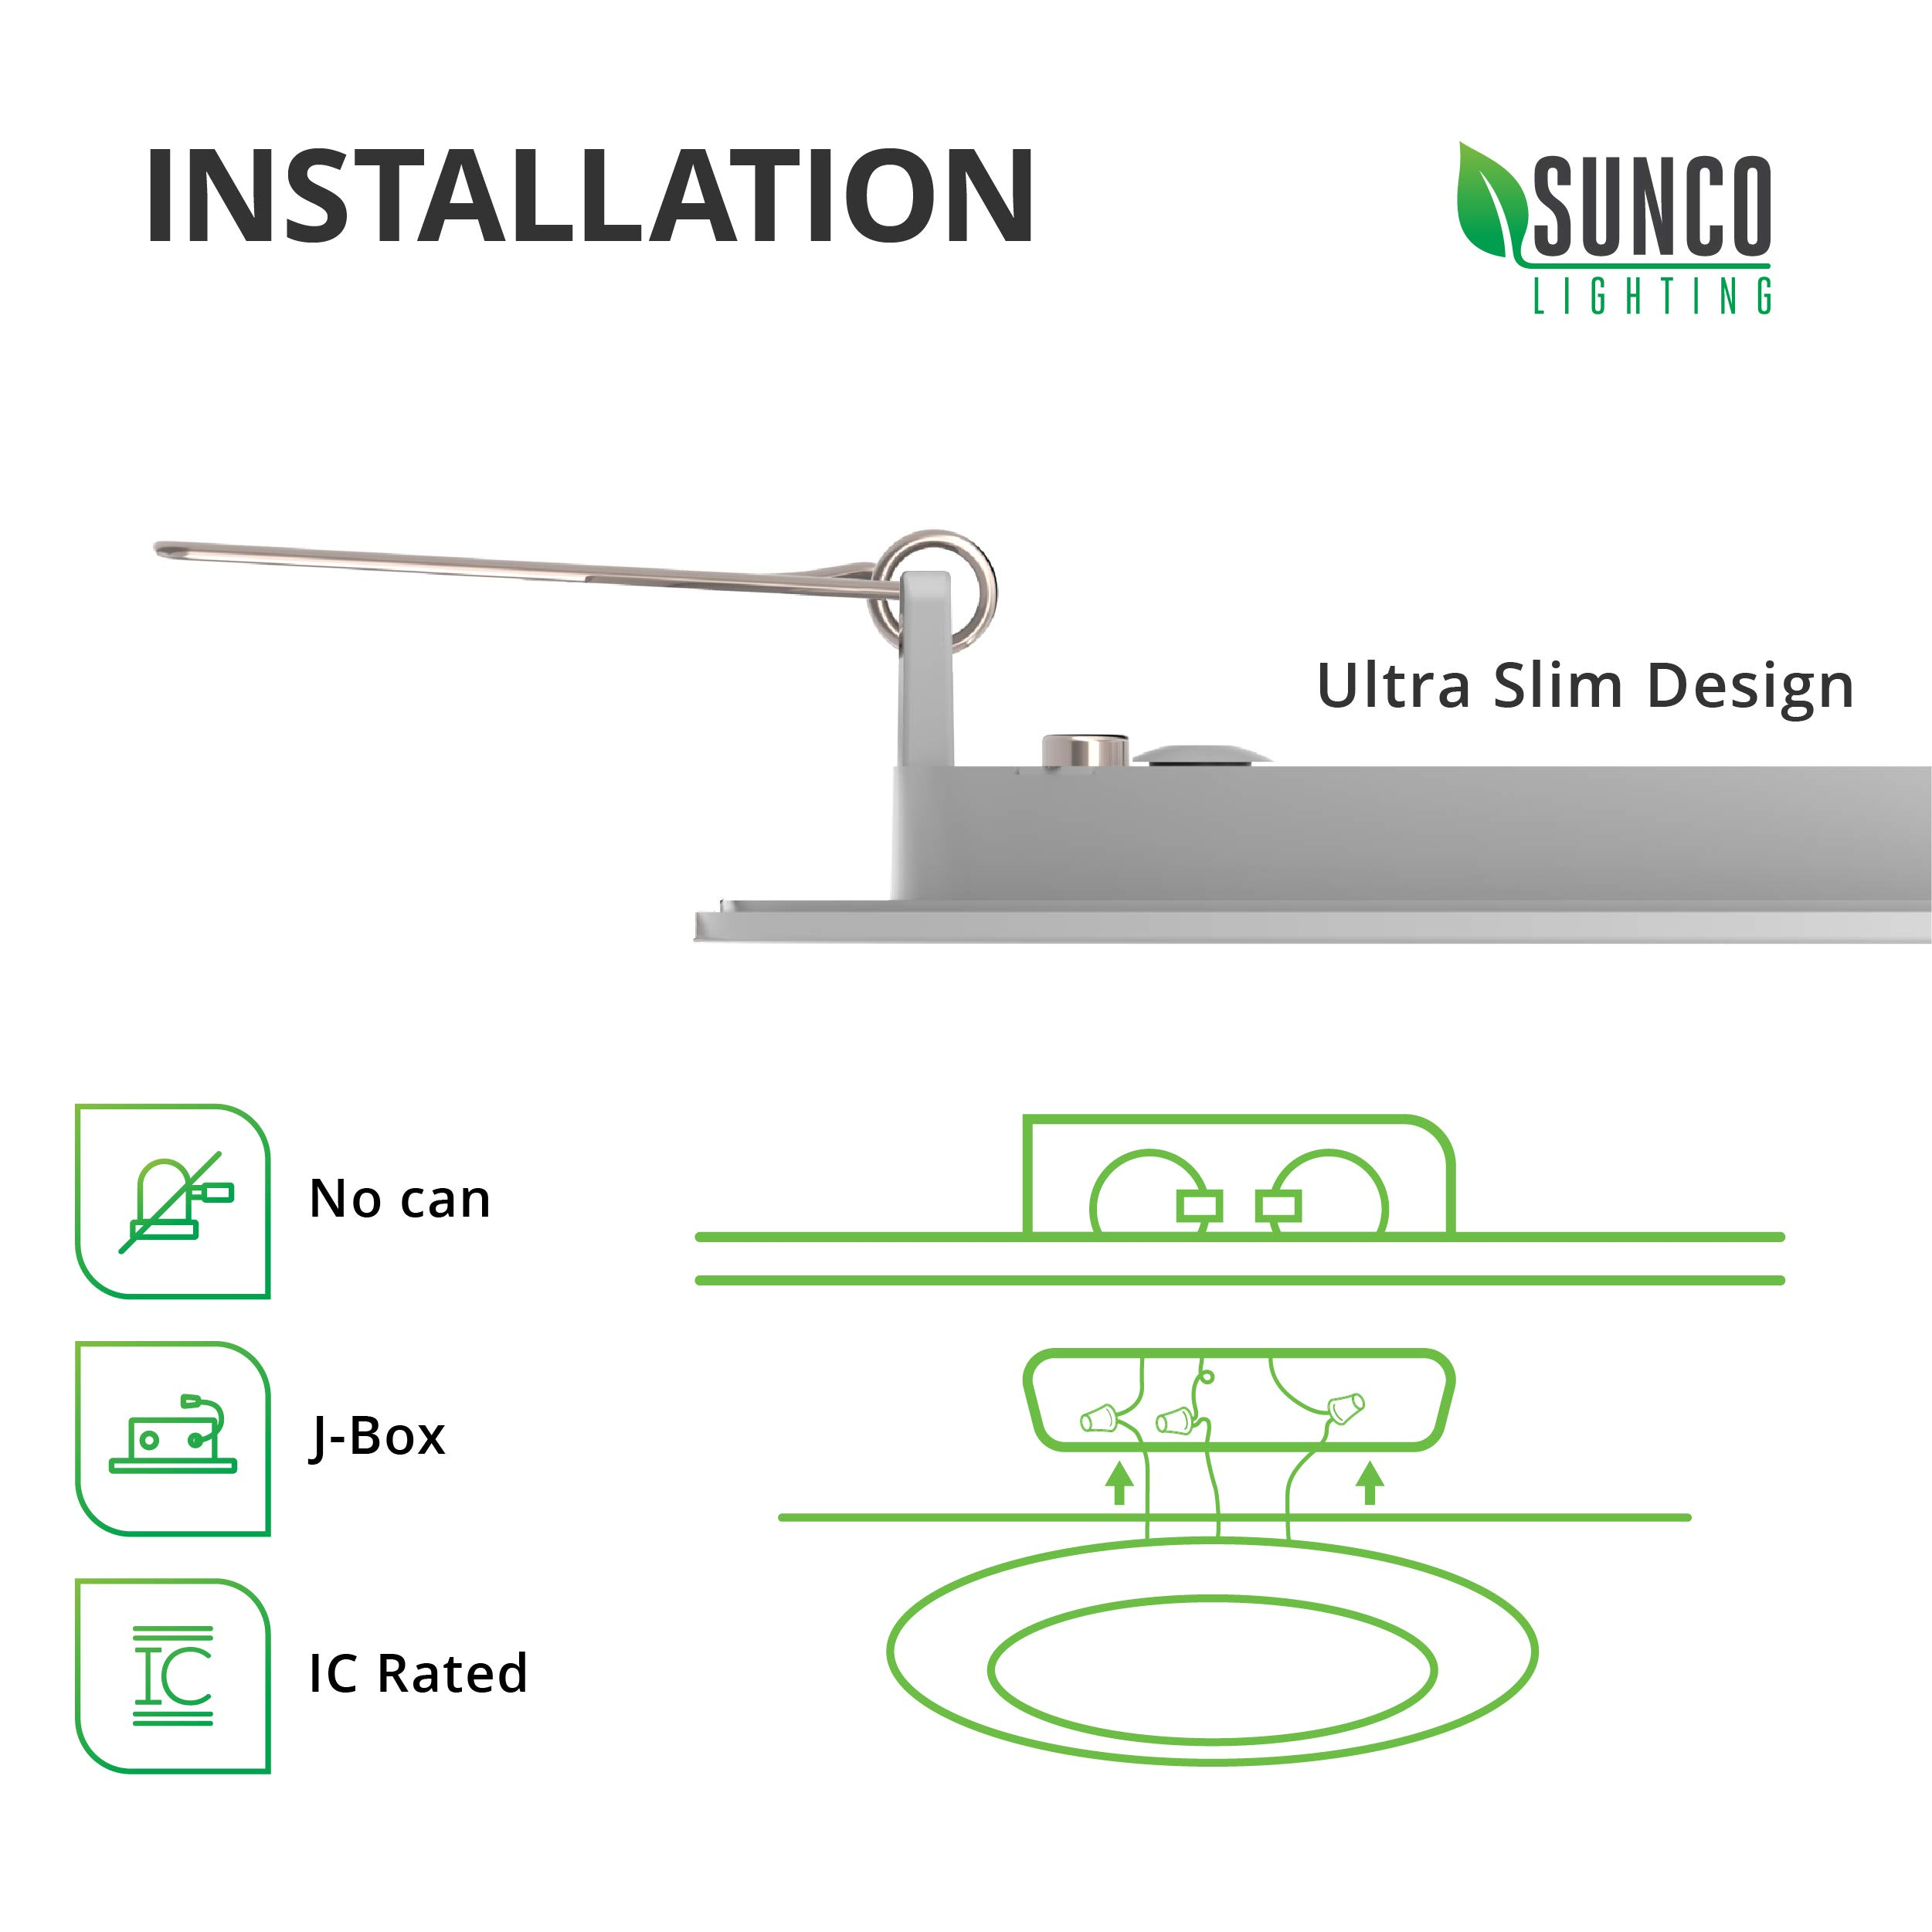 Sunco Lighting 16 Pack 6 Inch Slim LED Downlight with Junction Box, 14W=100W, 850 LM, Dimmable, 3000K Warm White, Recessed Jbox Fixture, IC Rated, Simple Retrofit Installation - ETL & Energy Star by Sunco Lighting (Image #5)